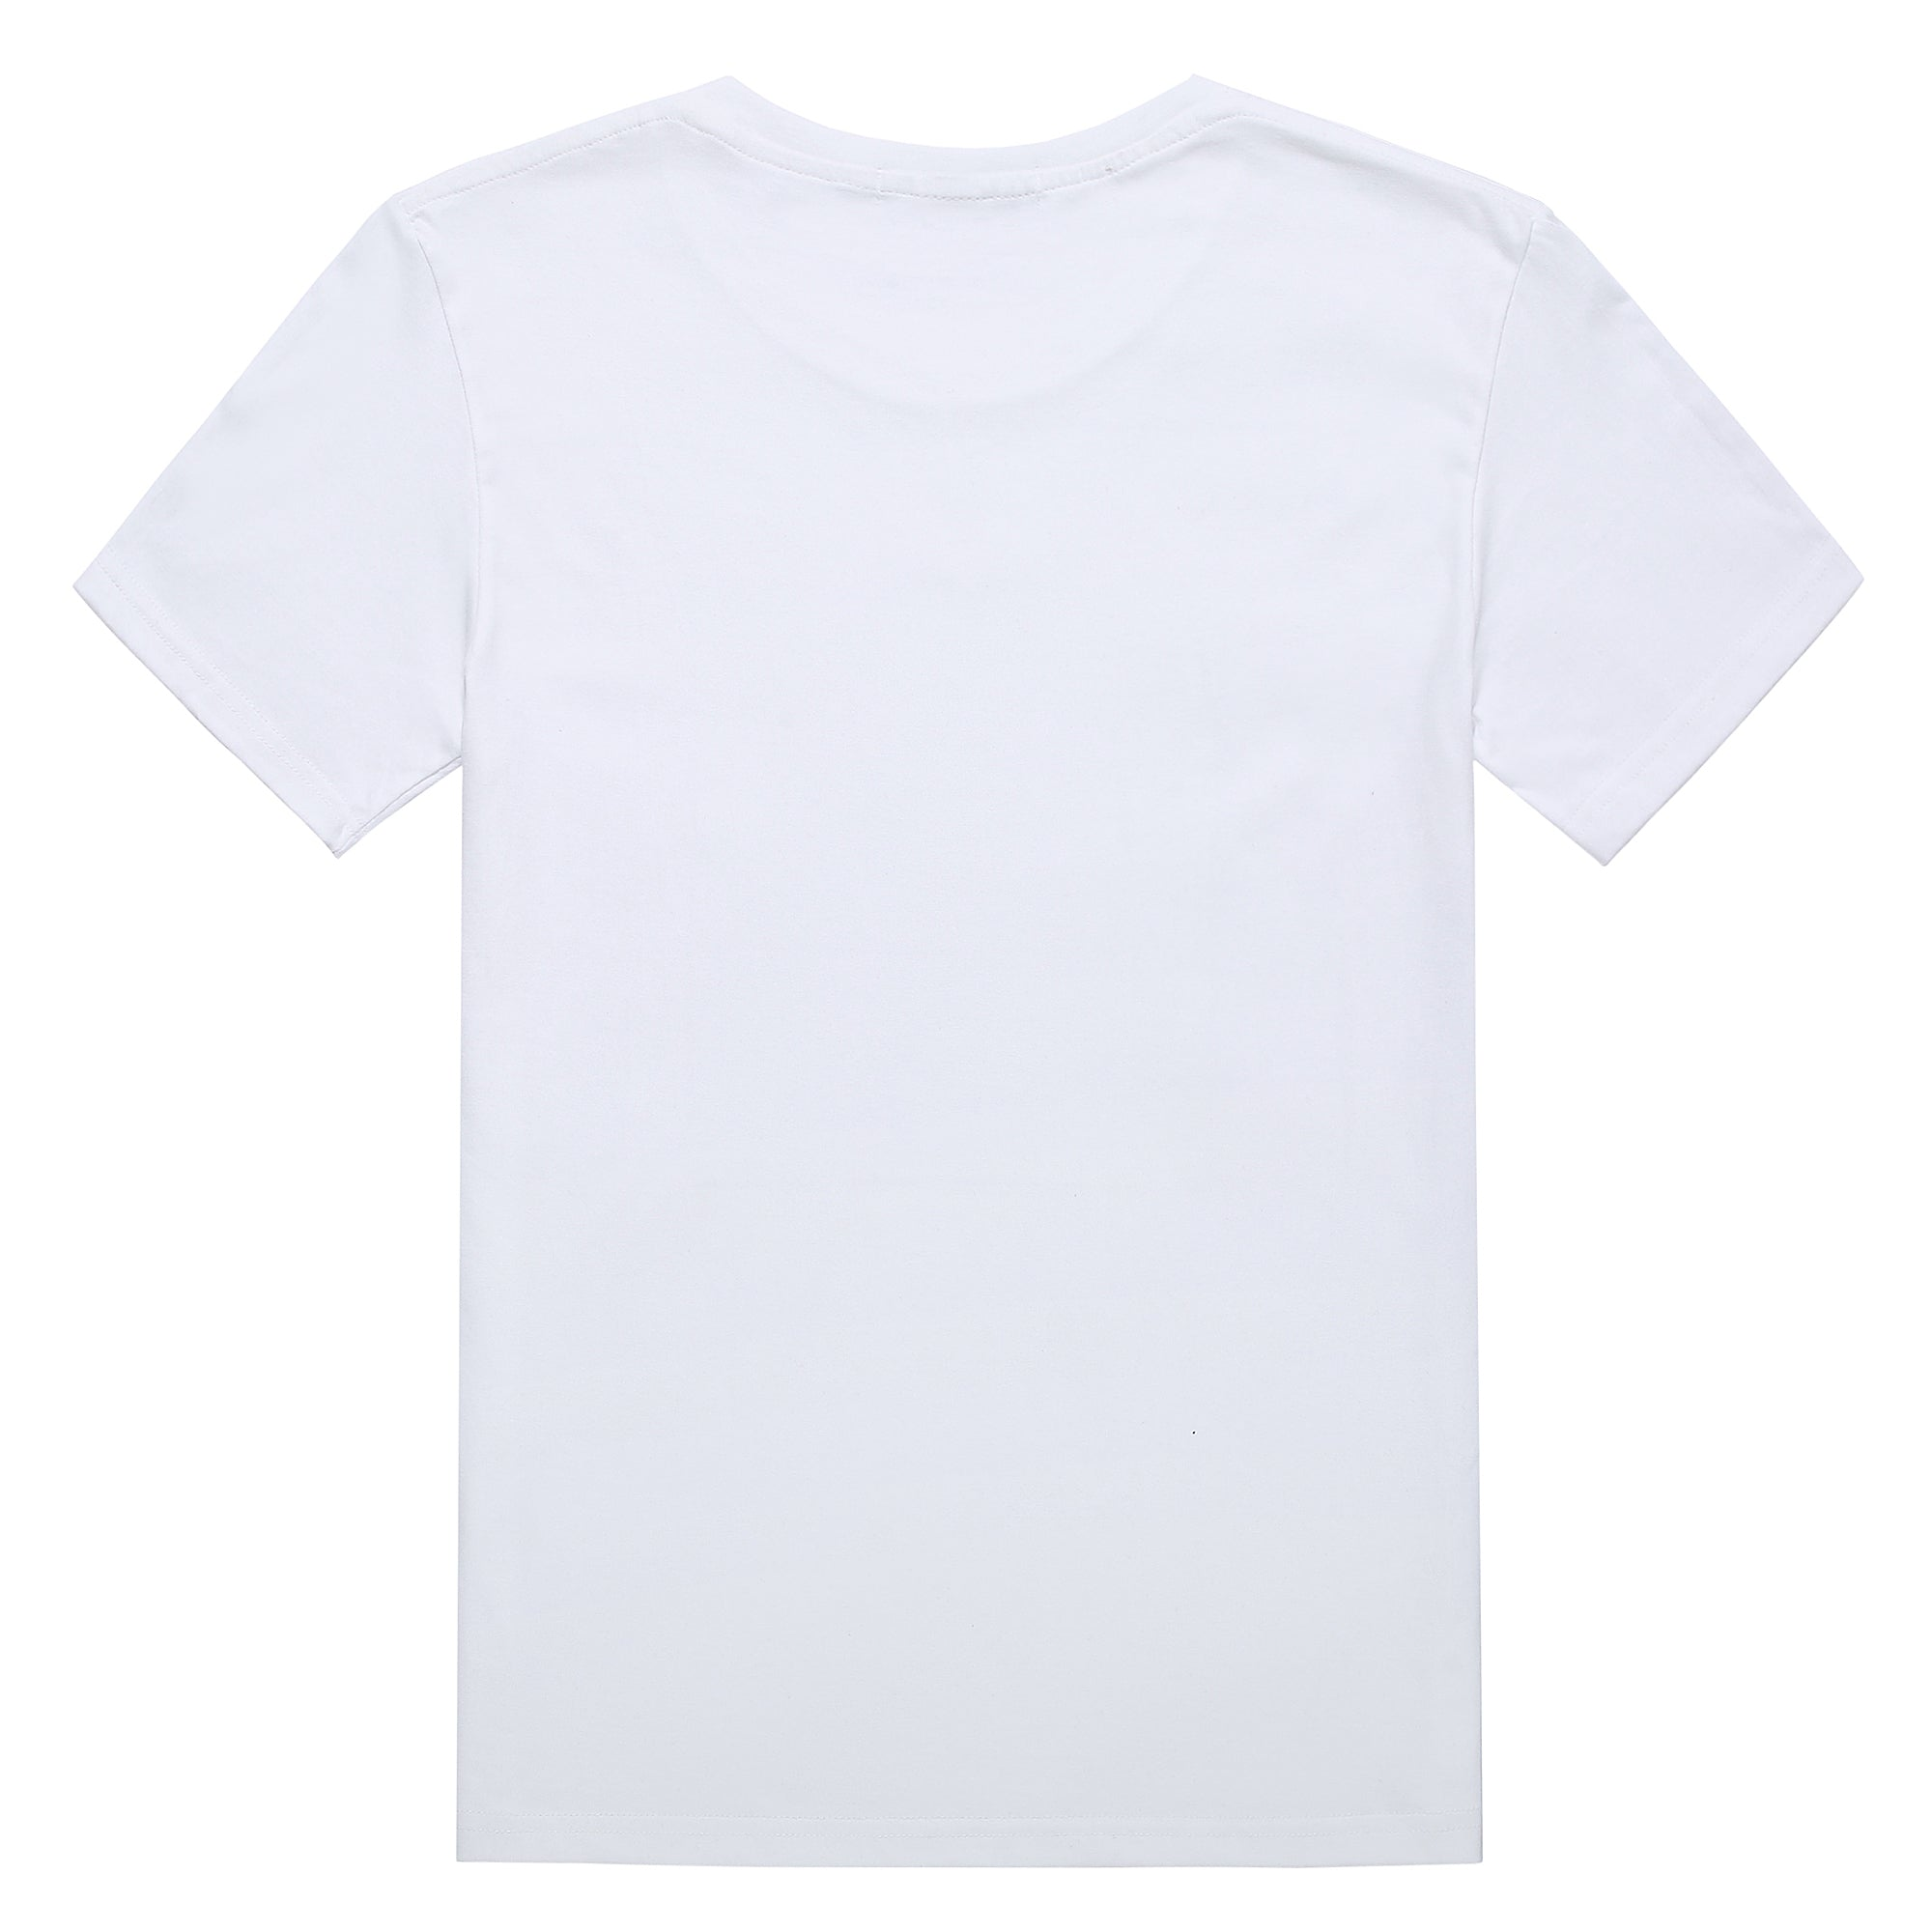 Original Do The Talking T-shirt In White